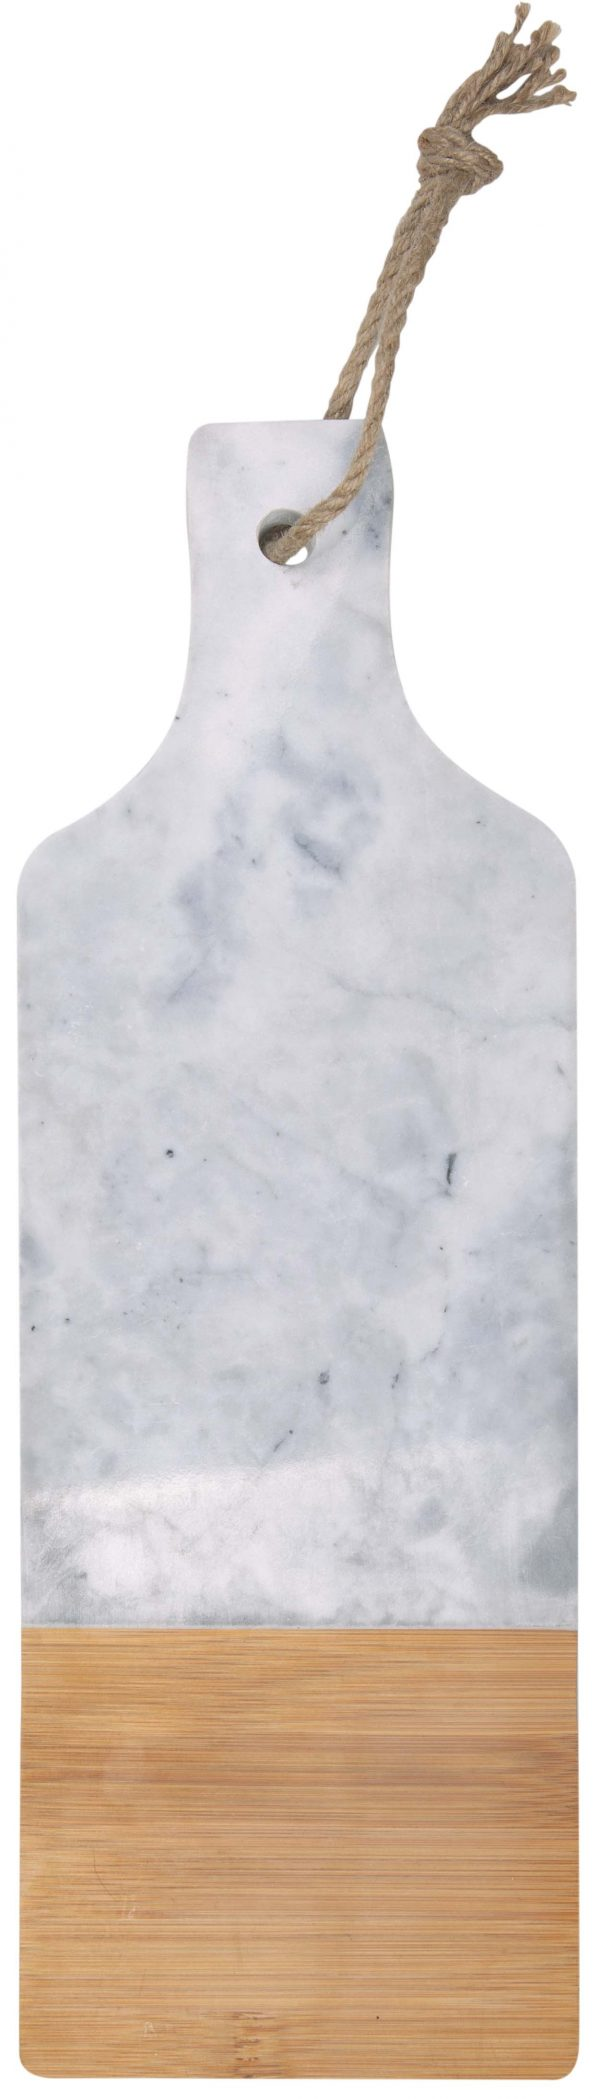 Marble Serving Board 5